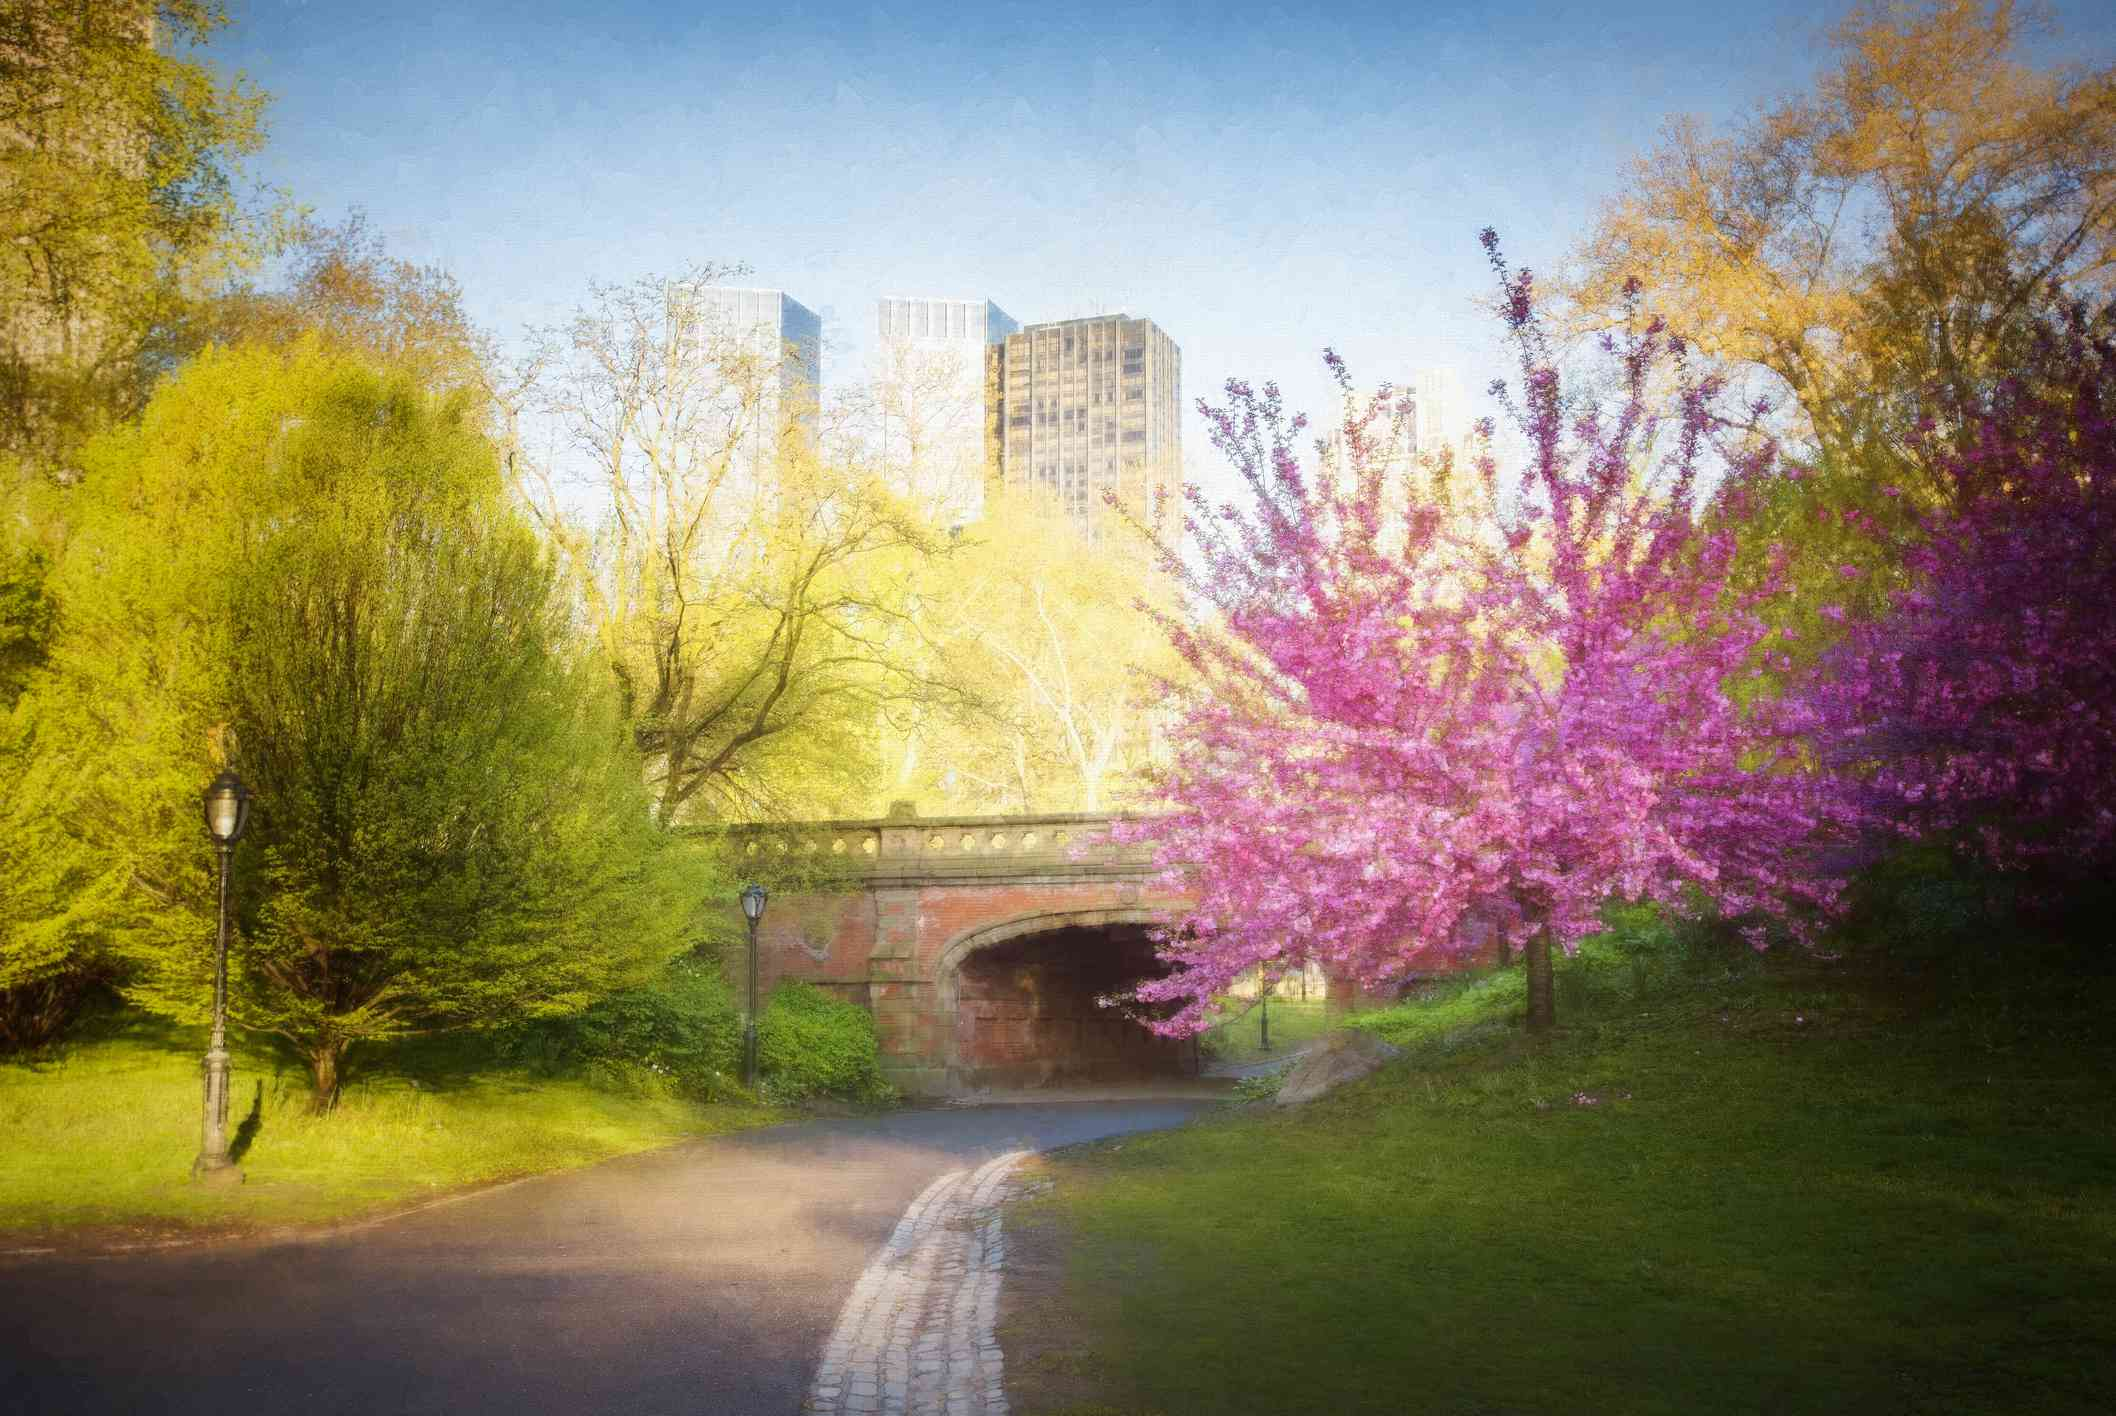 Cherry Blossoms, Spring, Bridge and Central Park, NYC.